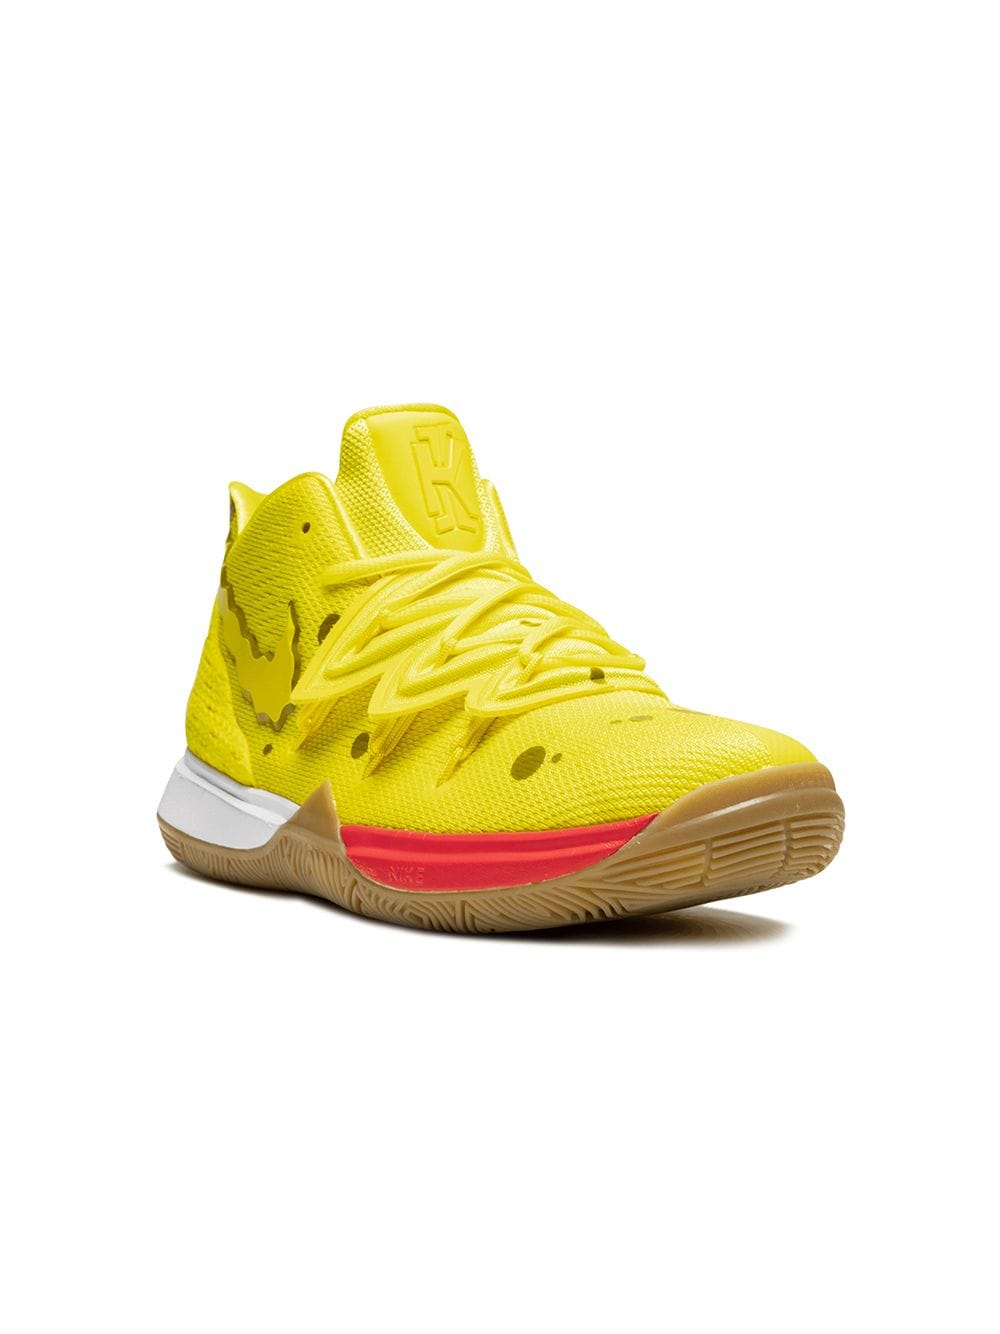 "Nike Kids Kyrie 5 ""Spongebob"" sneakers - Yellow von Nike Kids"